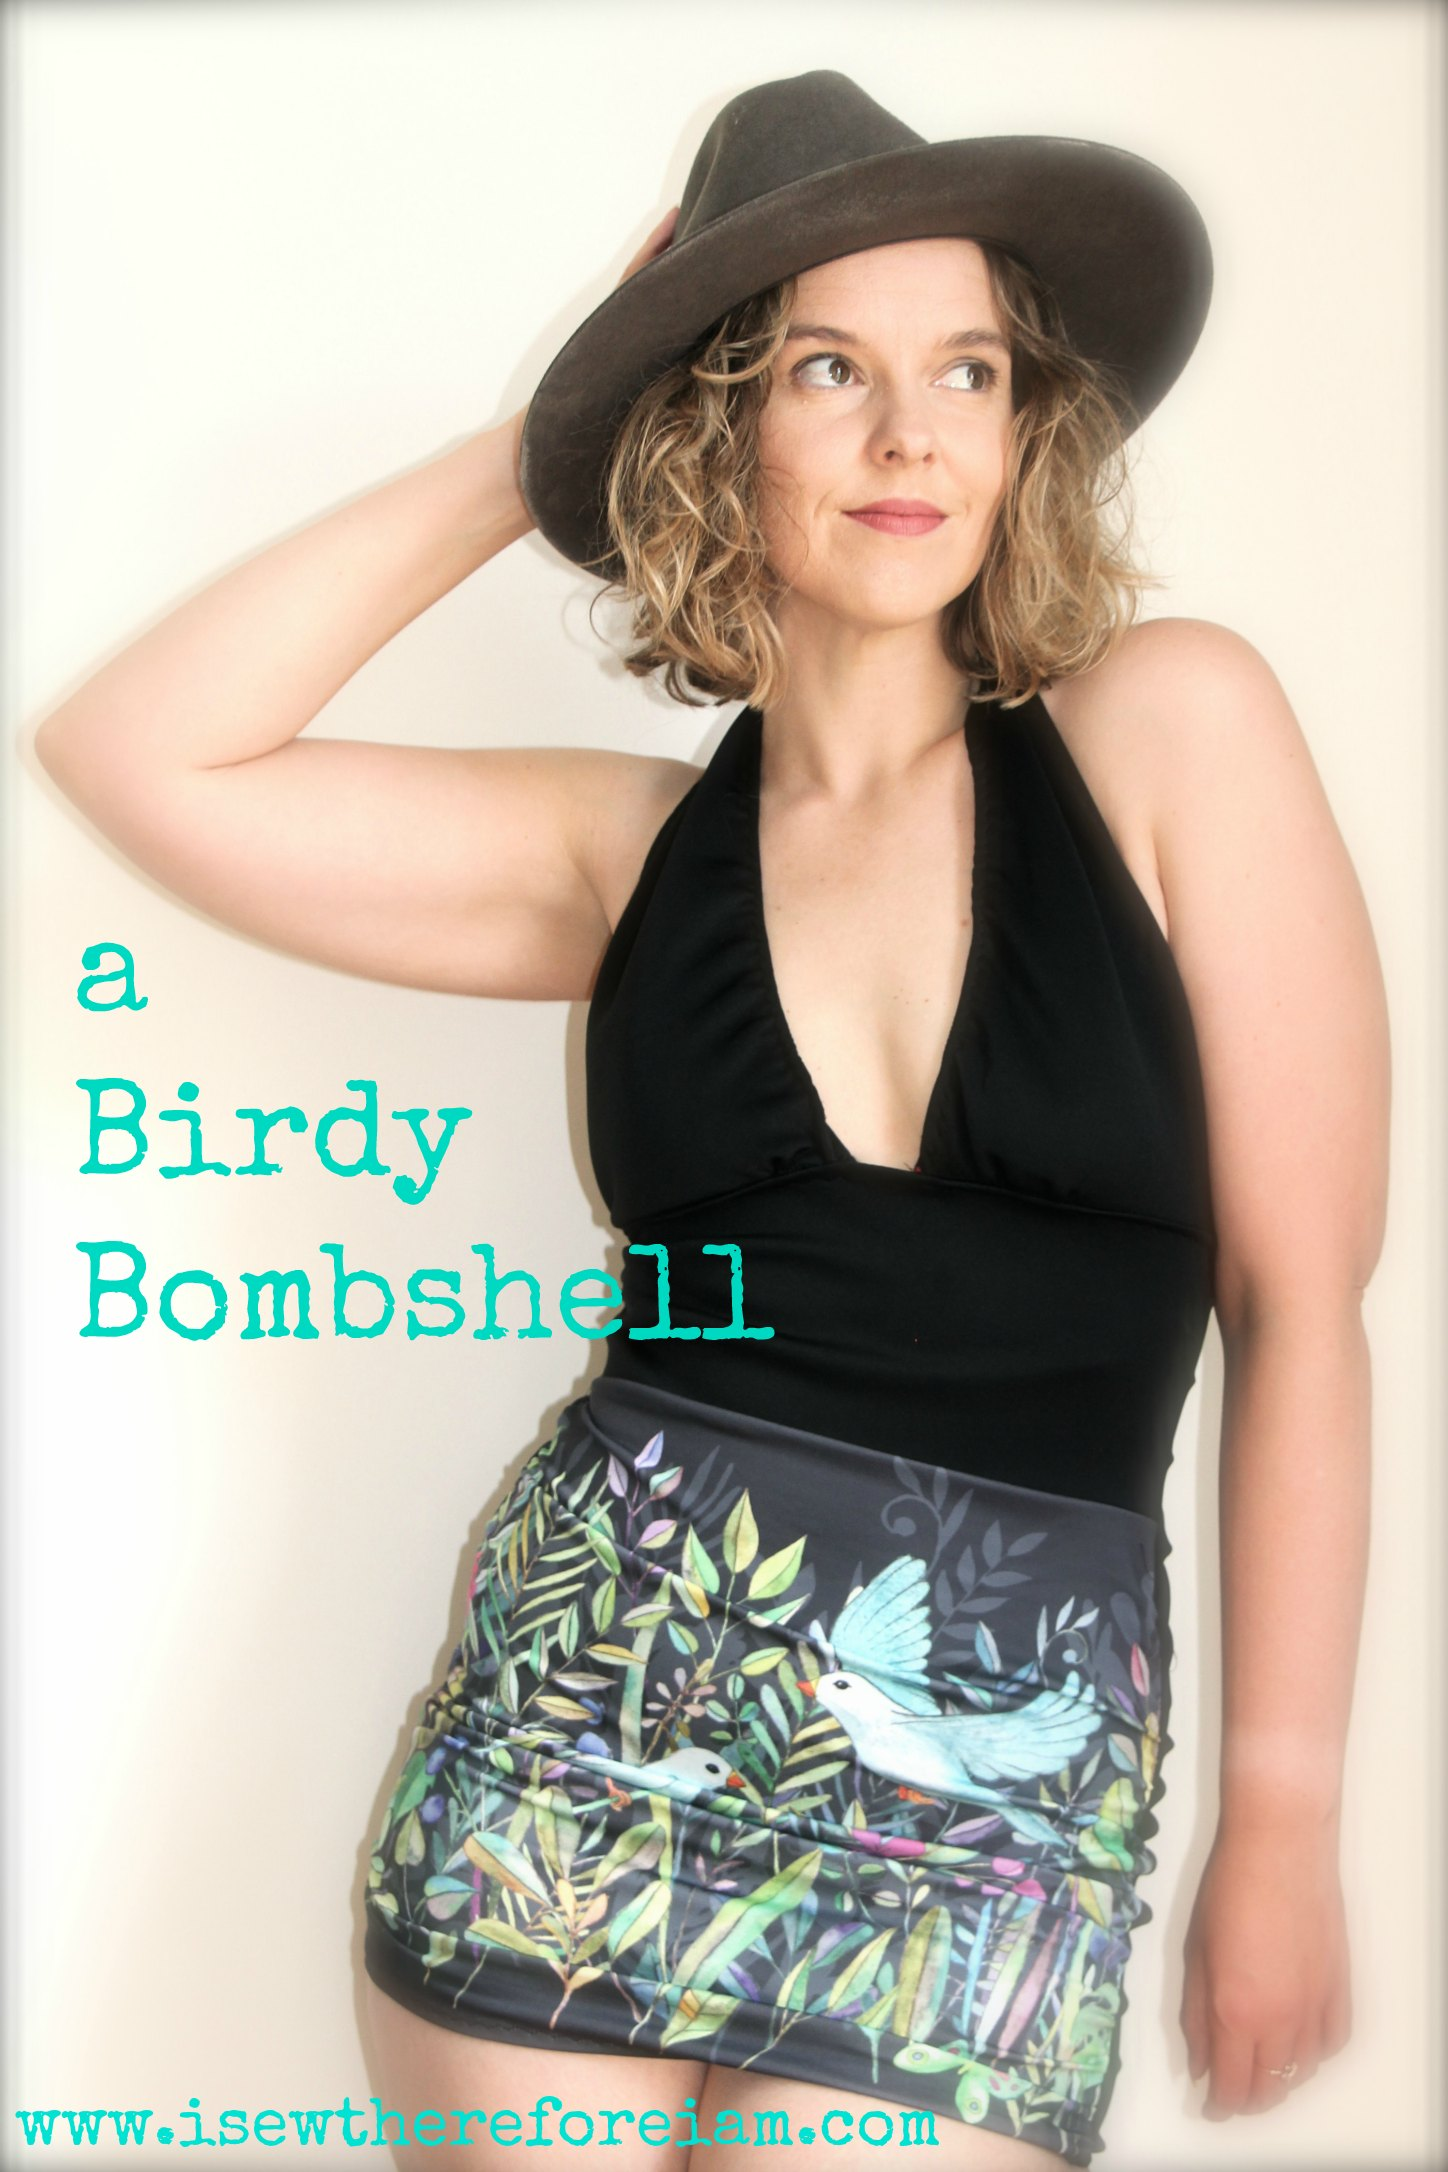 Check out this blog about sewing the Bombshell Swimsuit, including some tips for those with a small bust